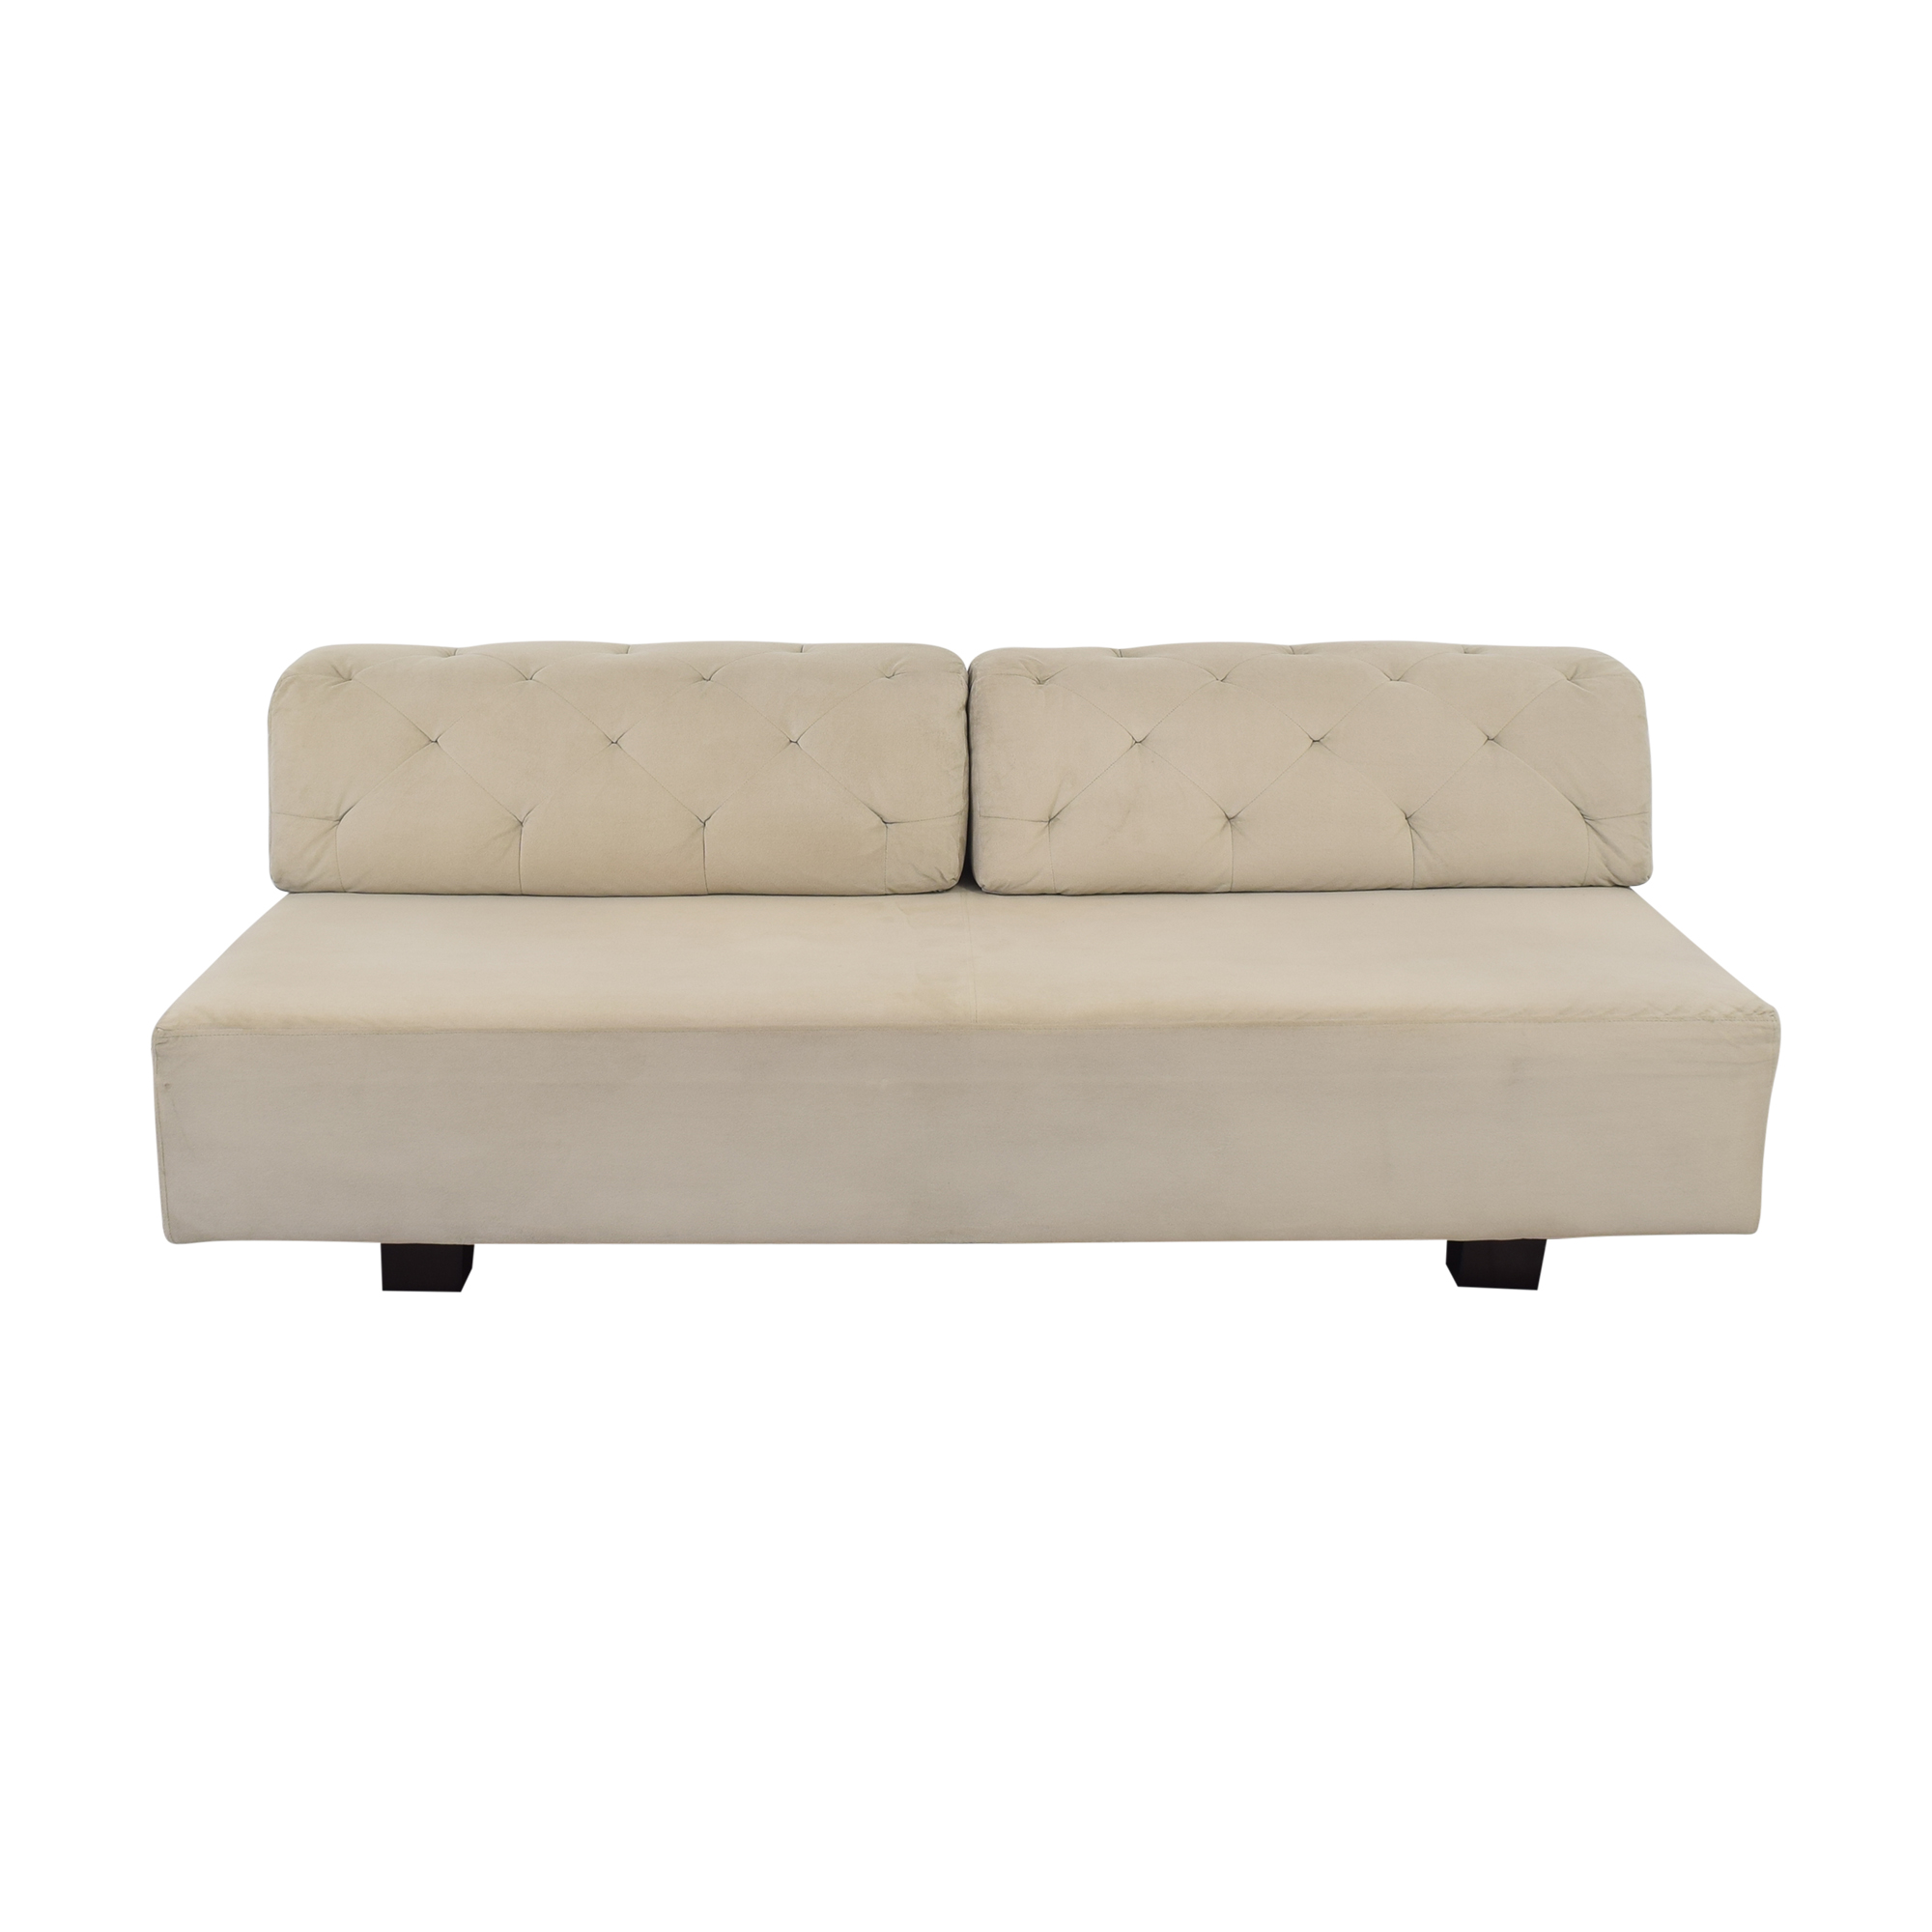 West Elm West Elm Tufted Tillary Sofa nj